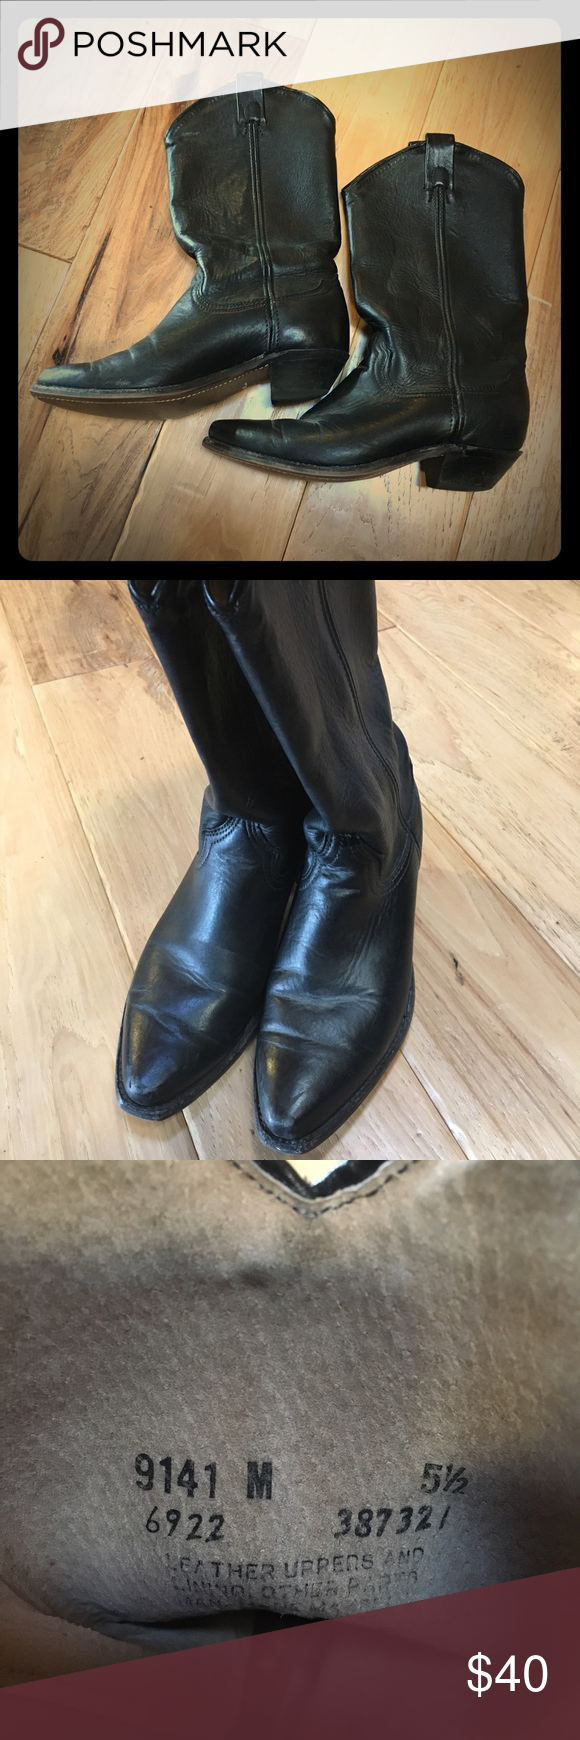 Awesome black leather boots! Love these! Black leather mid calf boots size 5.5! Shoes Heeled Boots